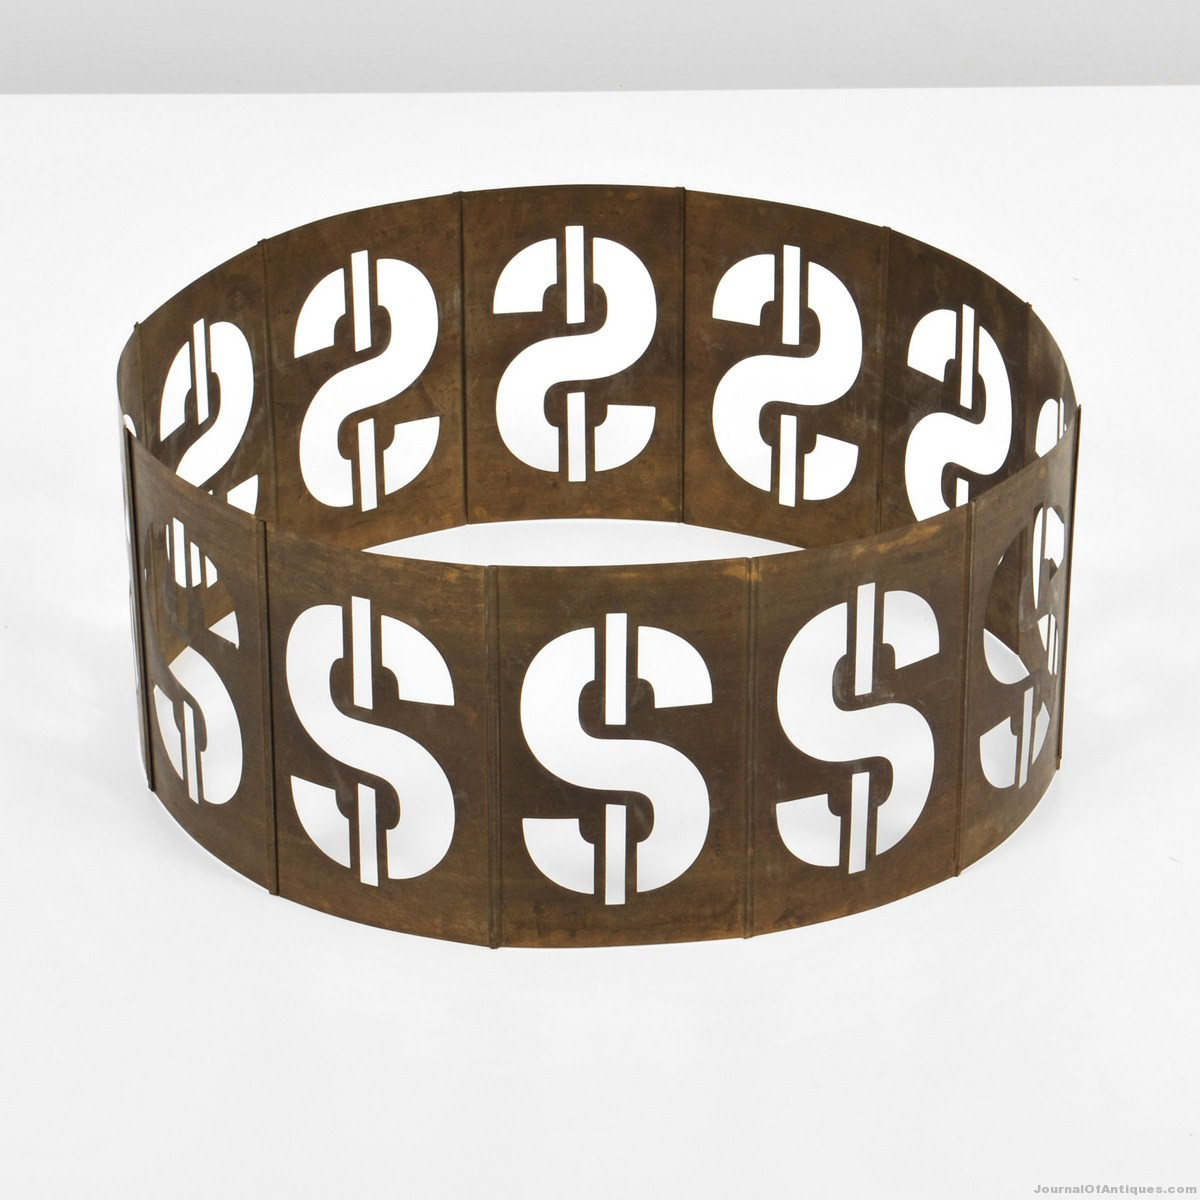 1981 Andy Warhol sculpture, $52,000, Palm Beach Modern